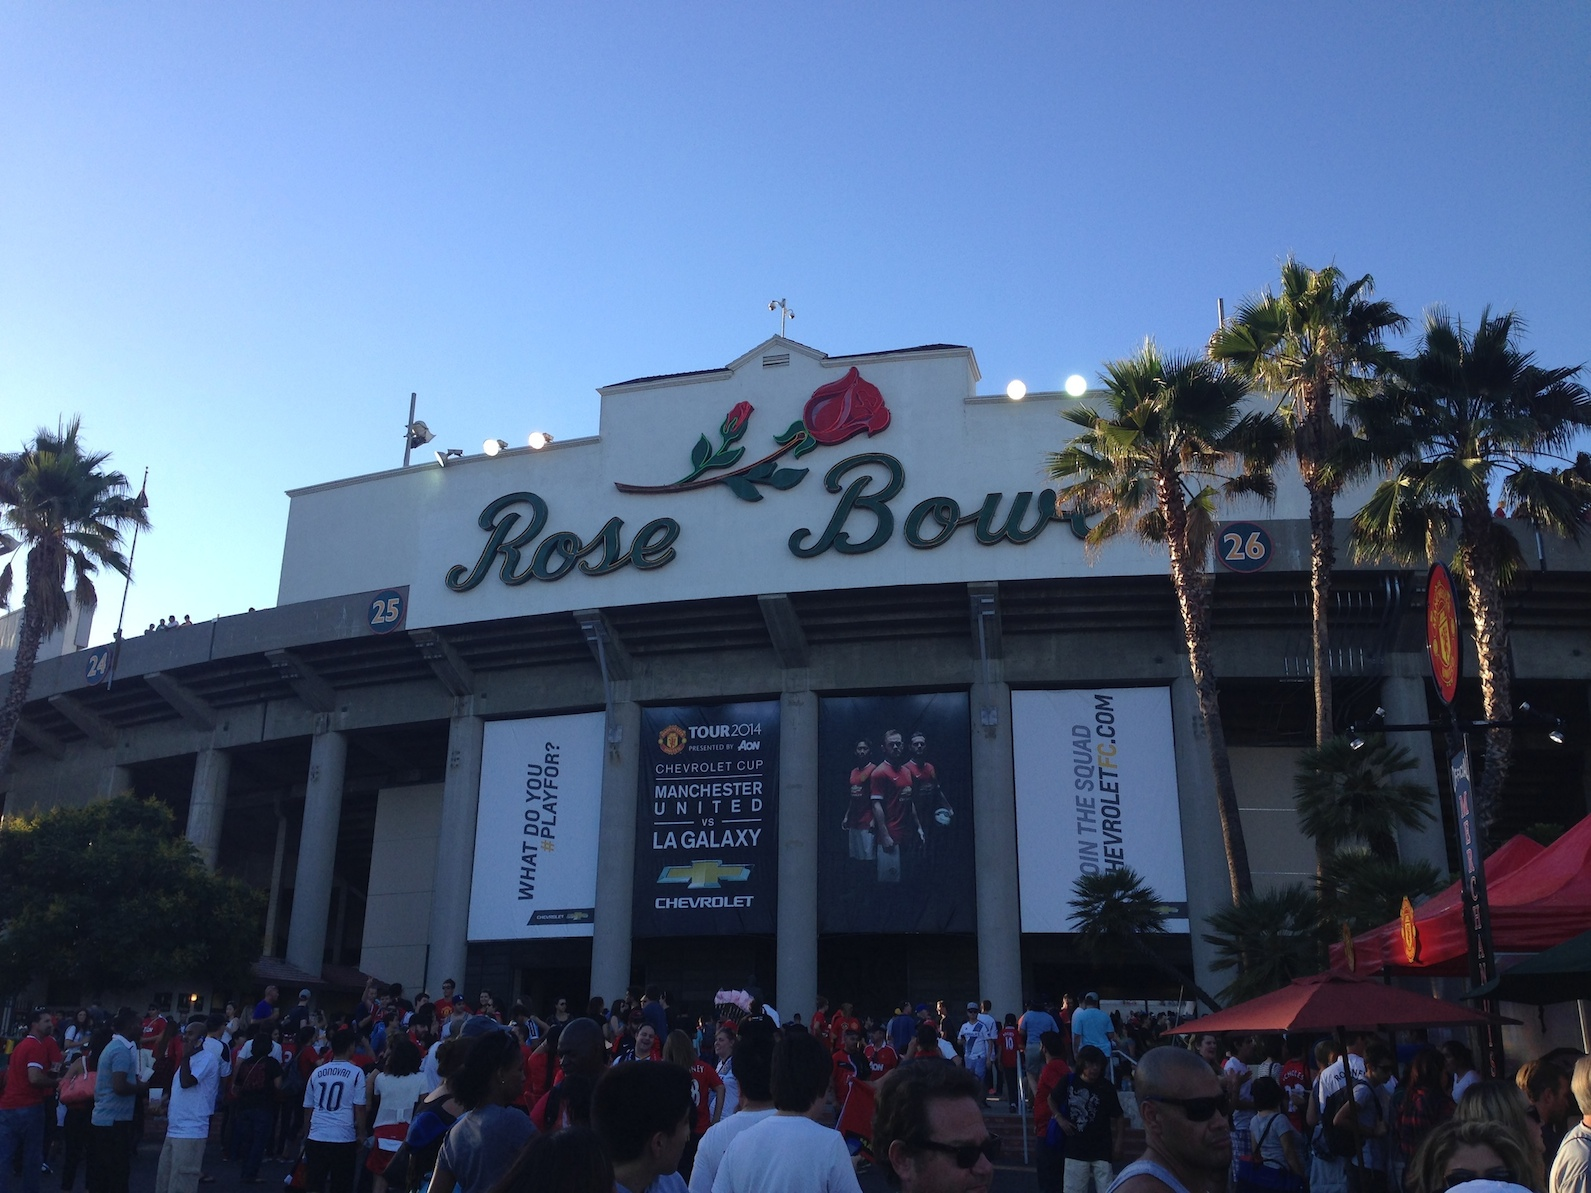 Rose Bowl Entrance